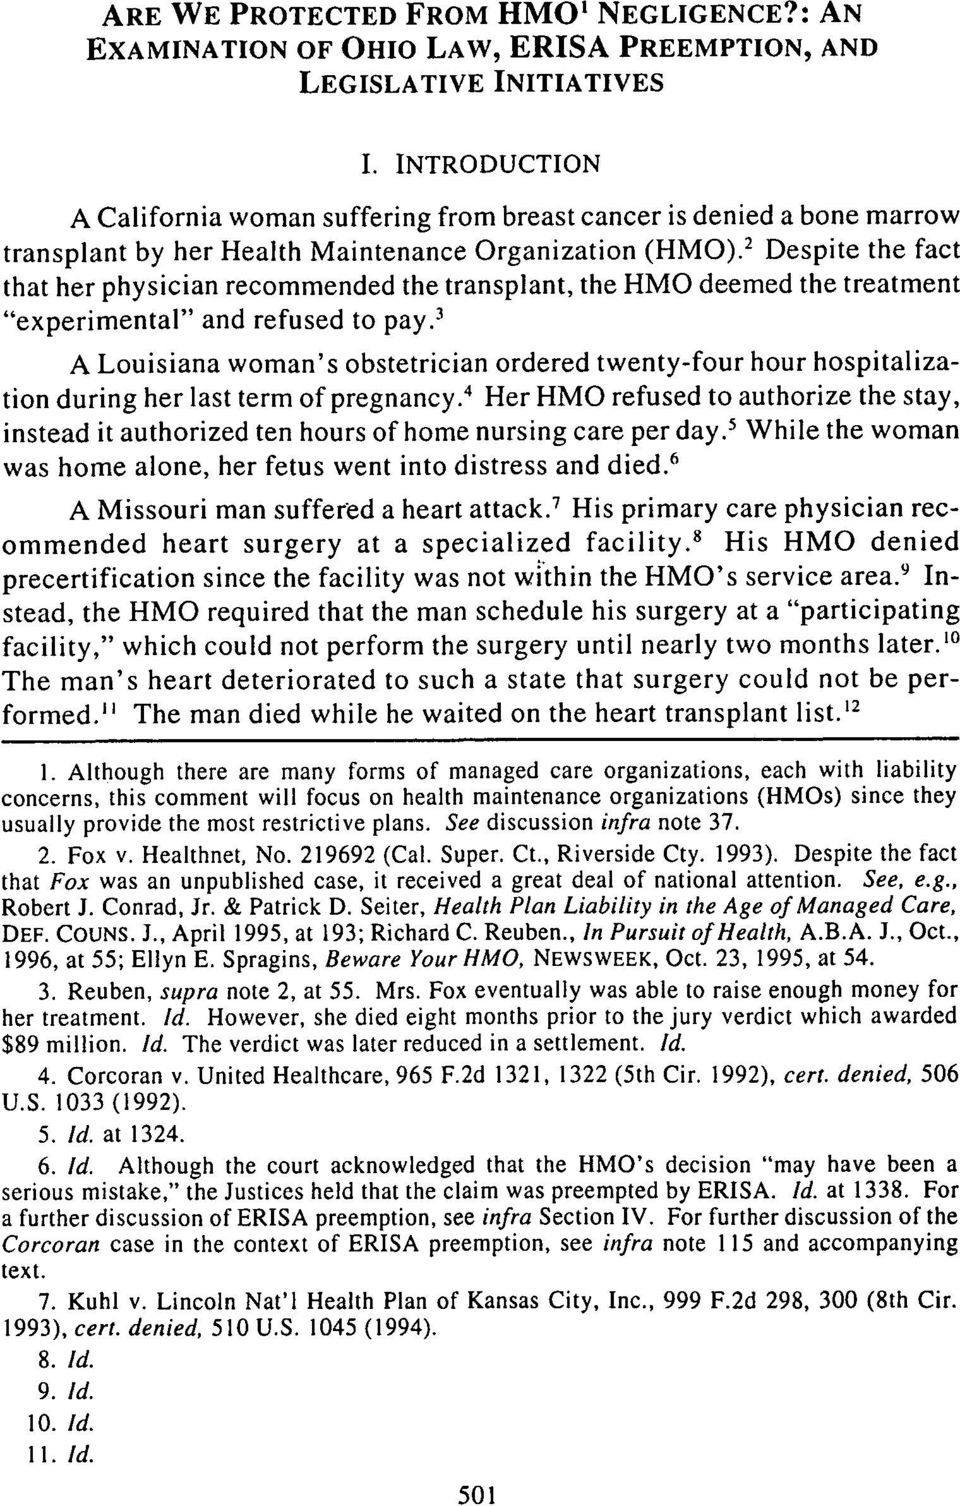 "2 Despite the fact that her physician recommended the transplant, the HMO deemed the treatment ""experimental"" and refused to pay."